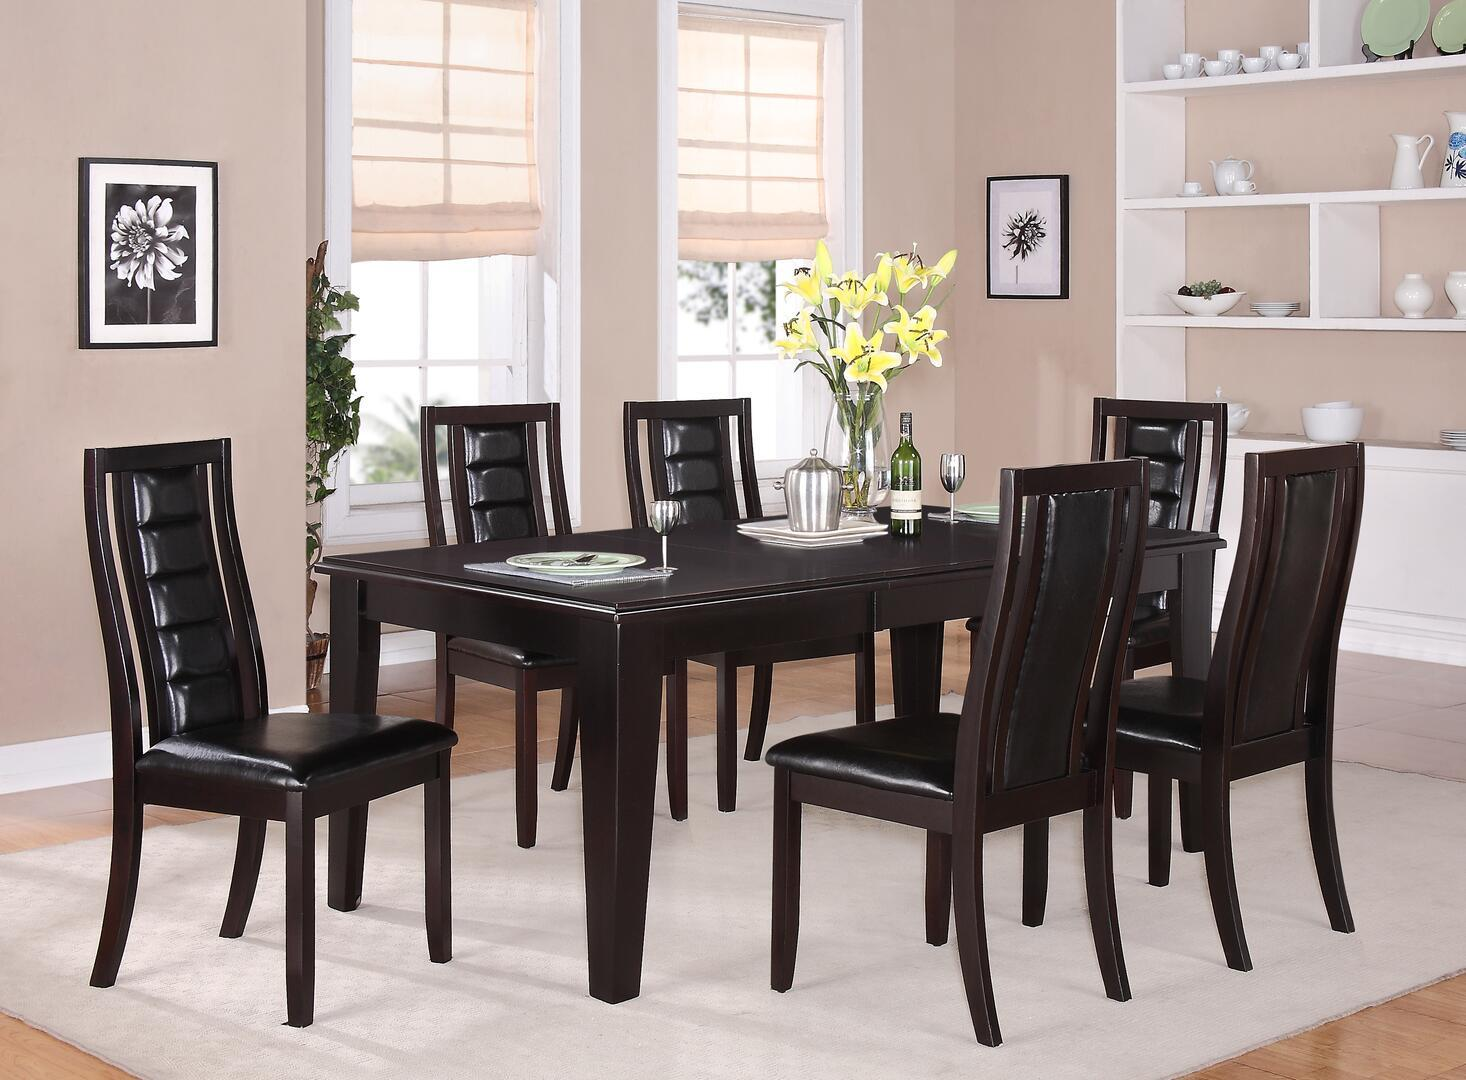 Transitional Espresso  Dining Table 1 pcs Cosmos Furniture 2020PIERA